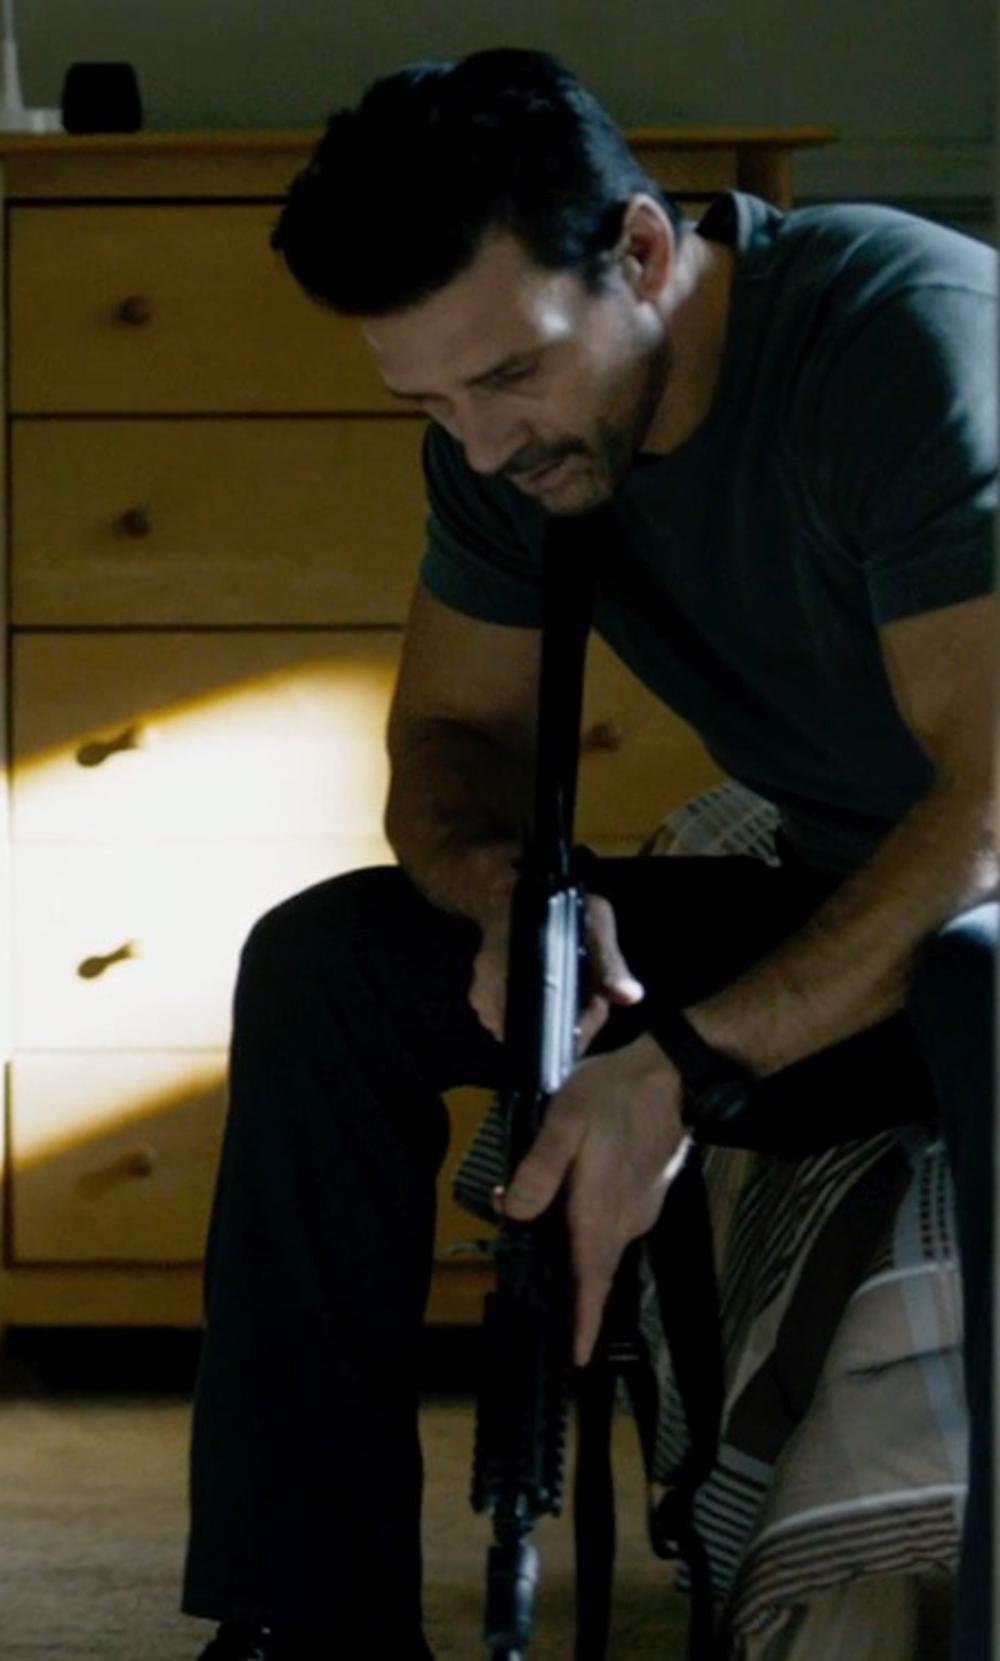 Frank Grillo with Diamond Supply Co. The Skate Life Stretch Chinos in The Purge: Anarchy